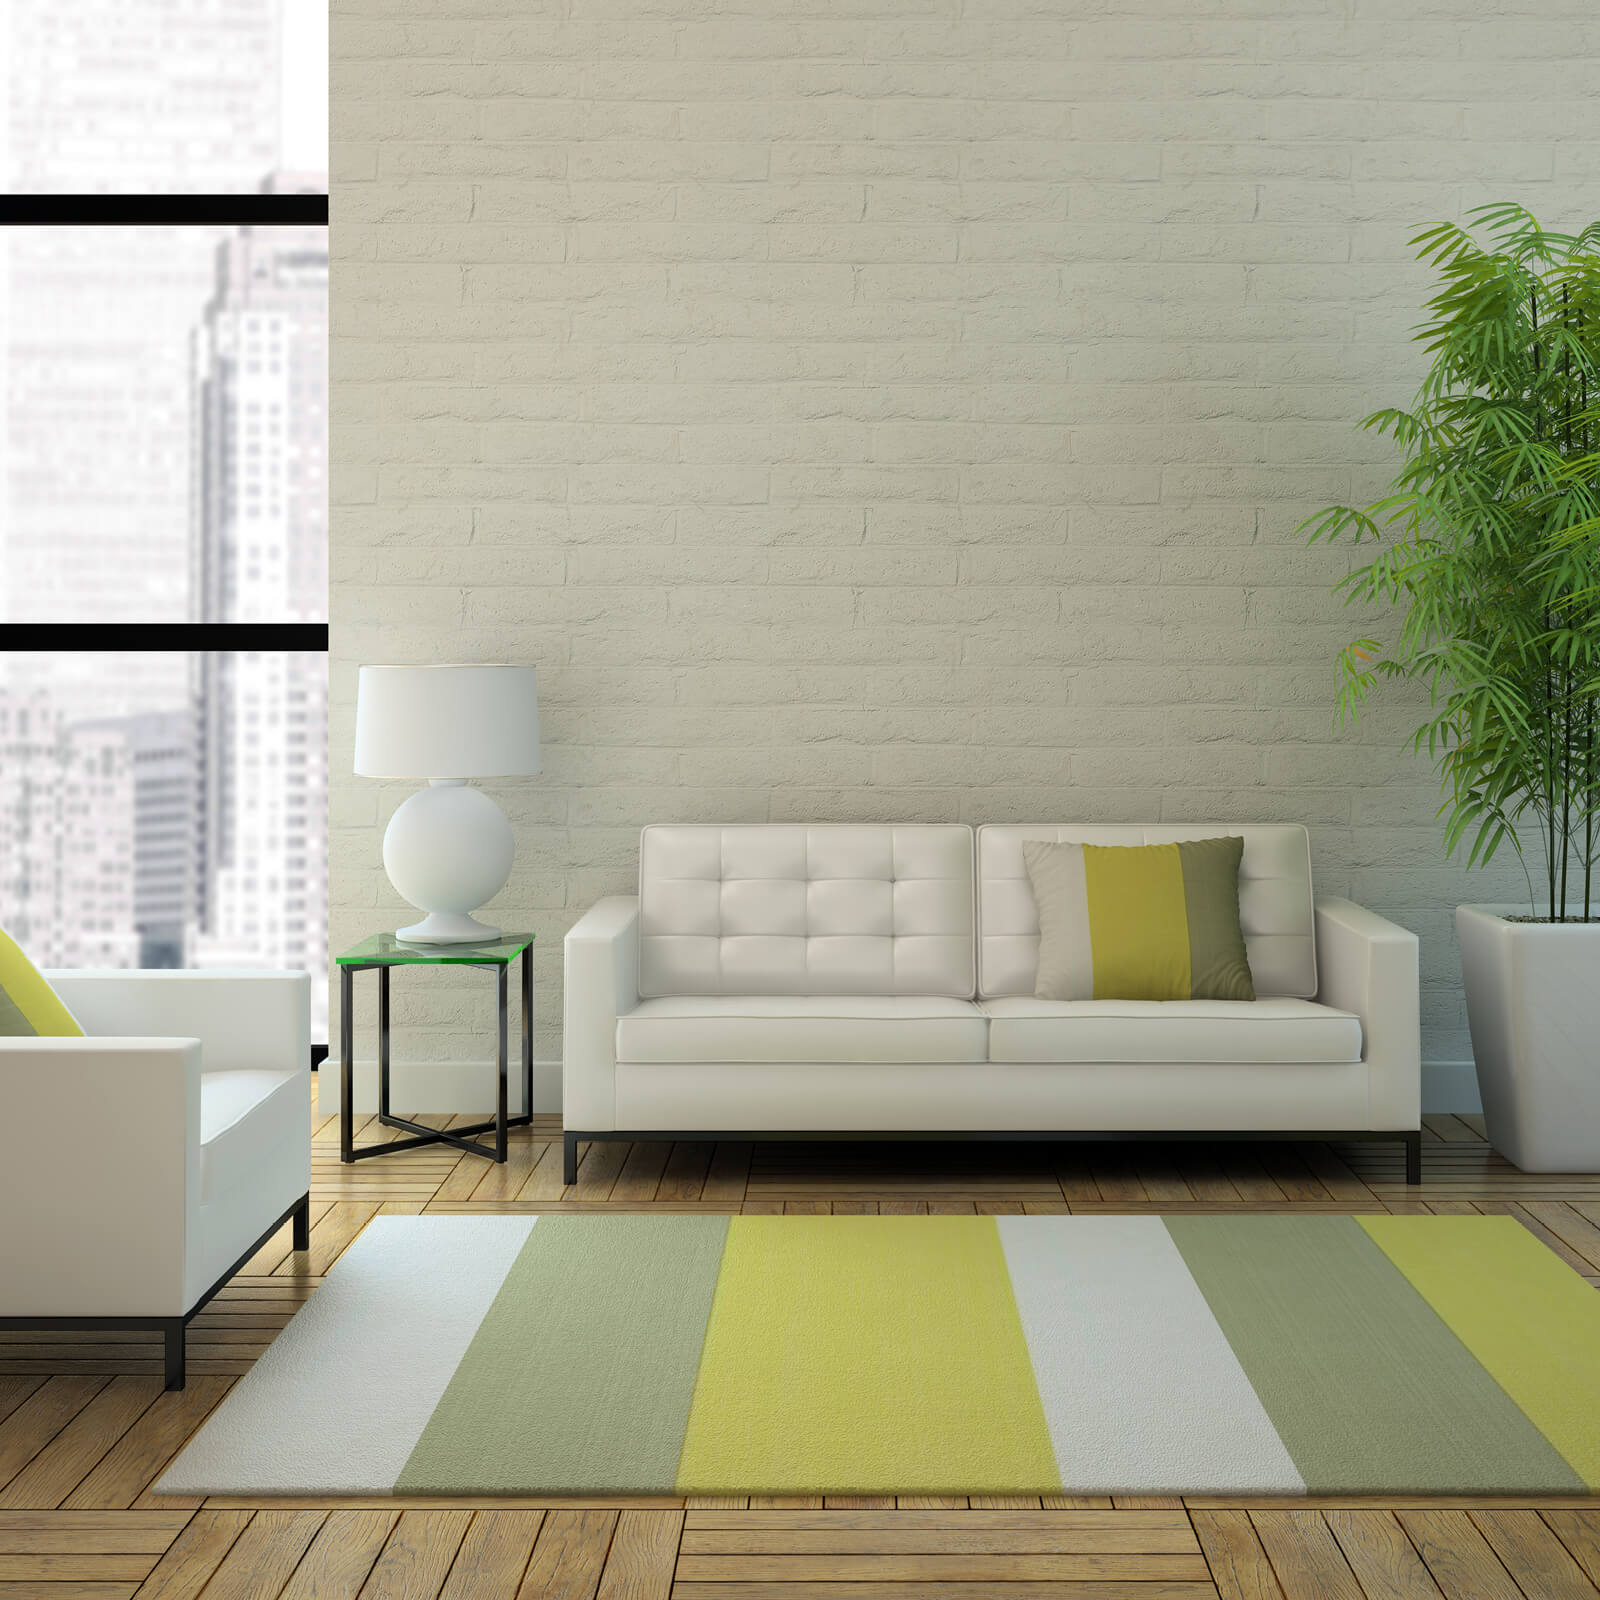 Stripped area rug | Great Lakes Carpet & Tile